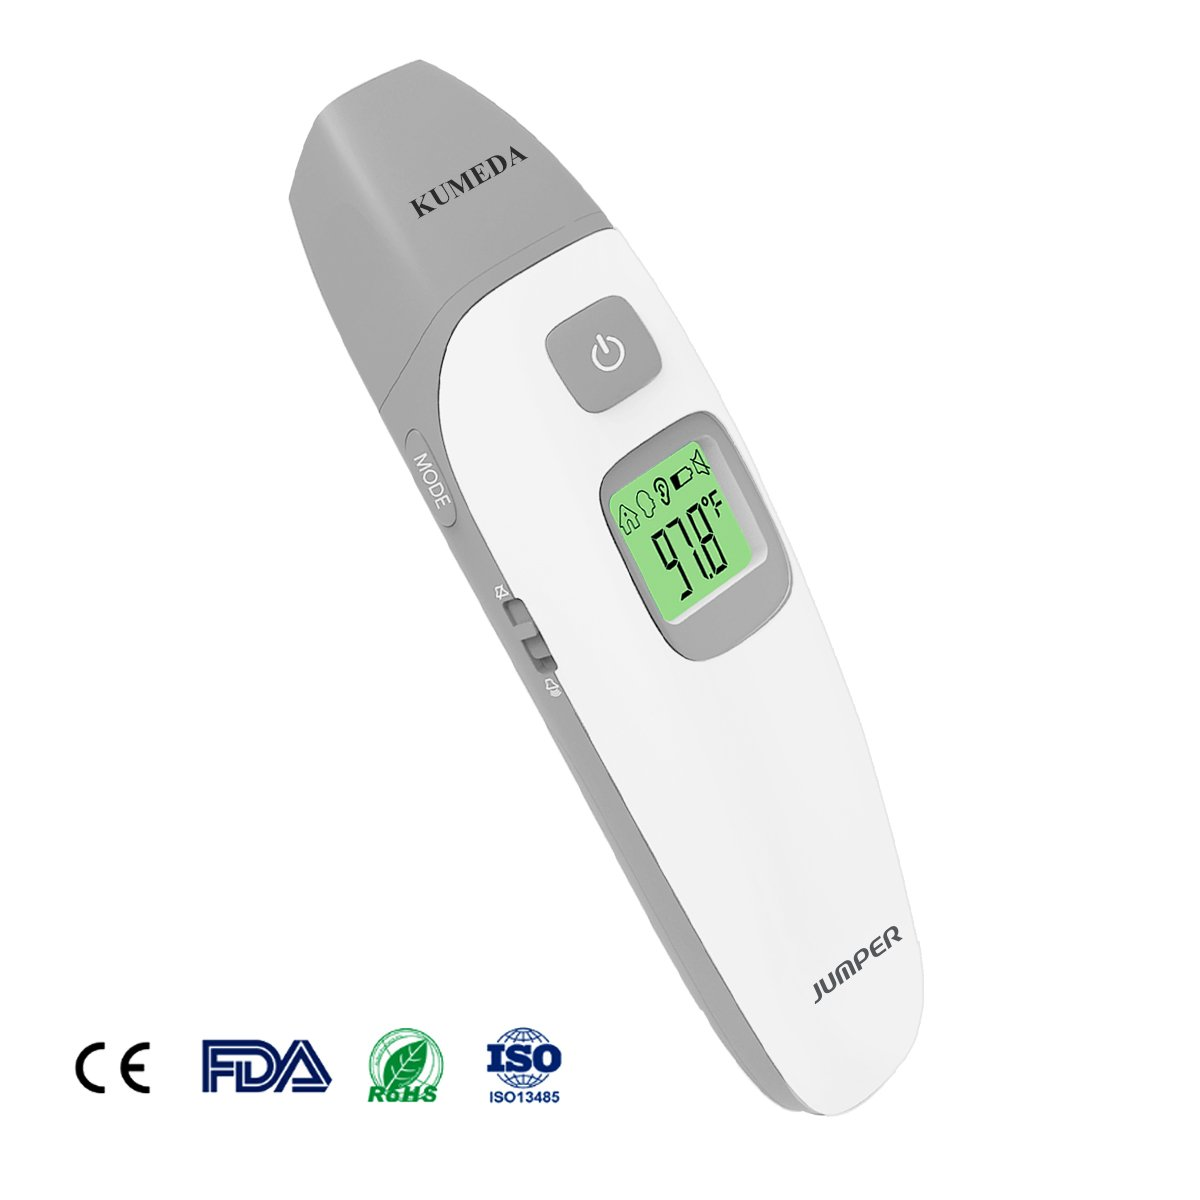 Baby Thermometer Forehead and Ear,KUMEDA FDA and CE Approved Clinical Medical Digital Thermometer Quick Read, No Touch With Fever Warning, Mute Function for Baby, Children and Adults.